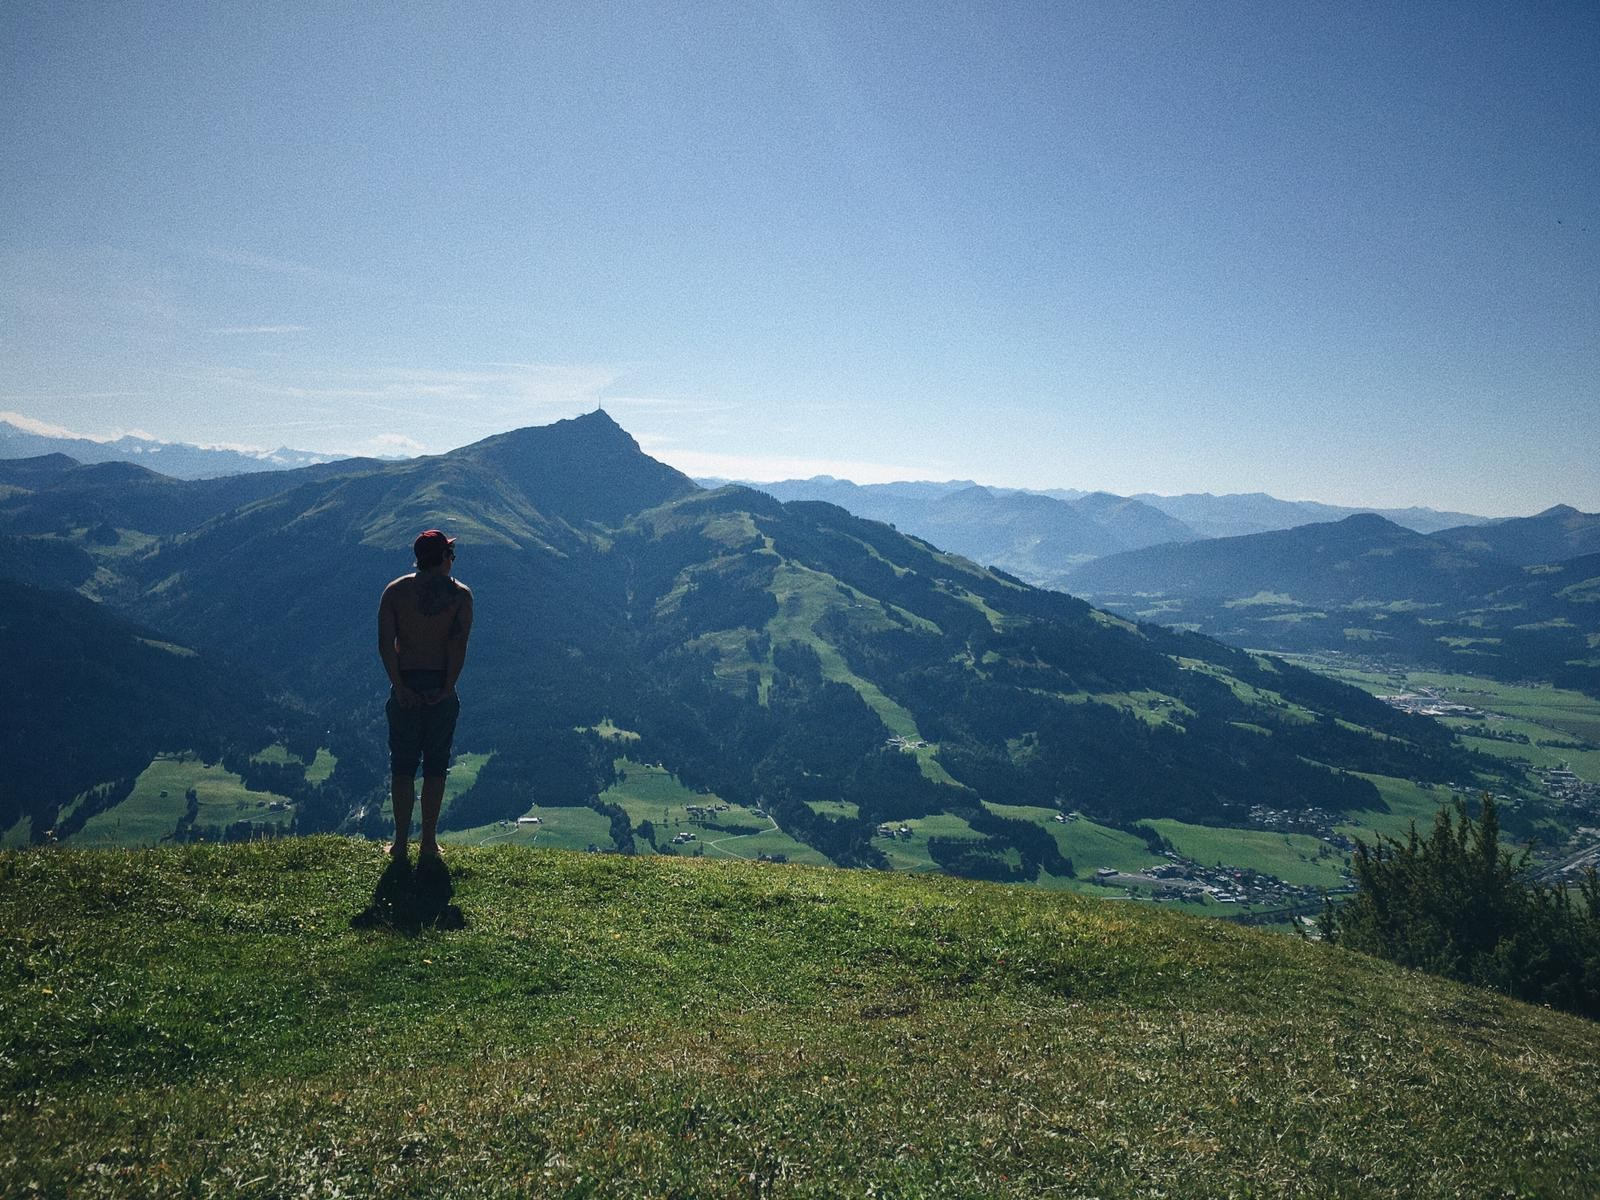 Man standing on mountain top with clear blue sky.